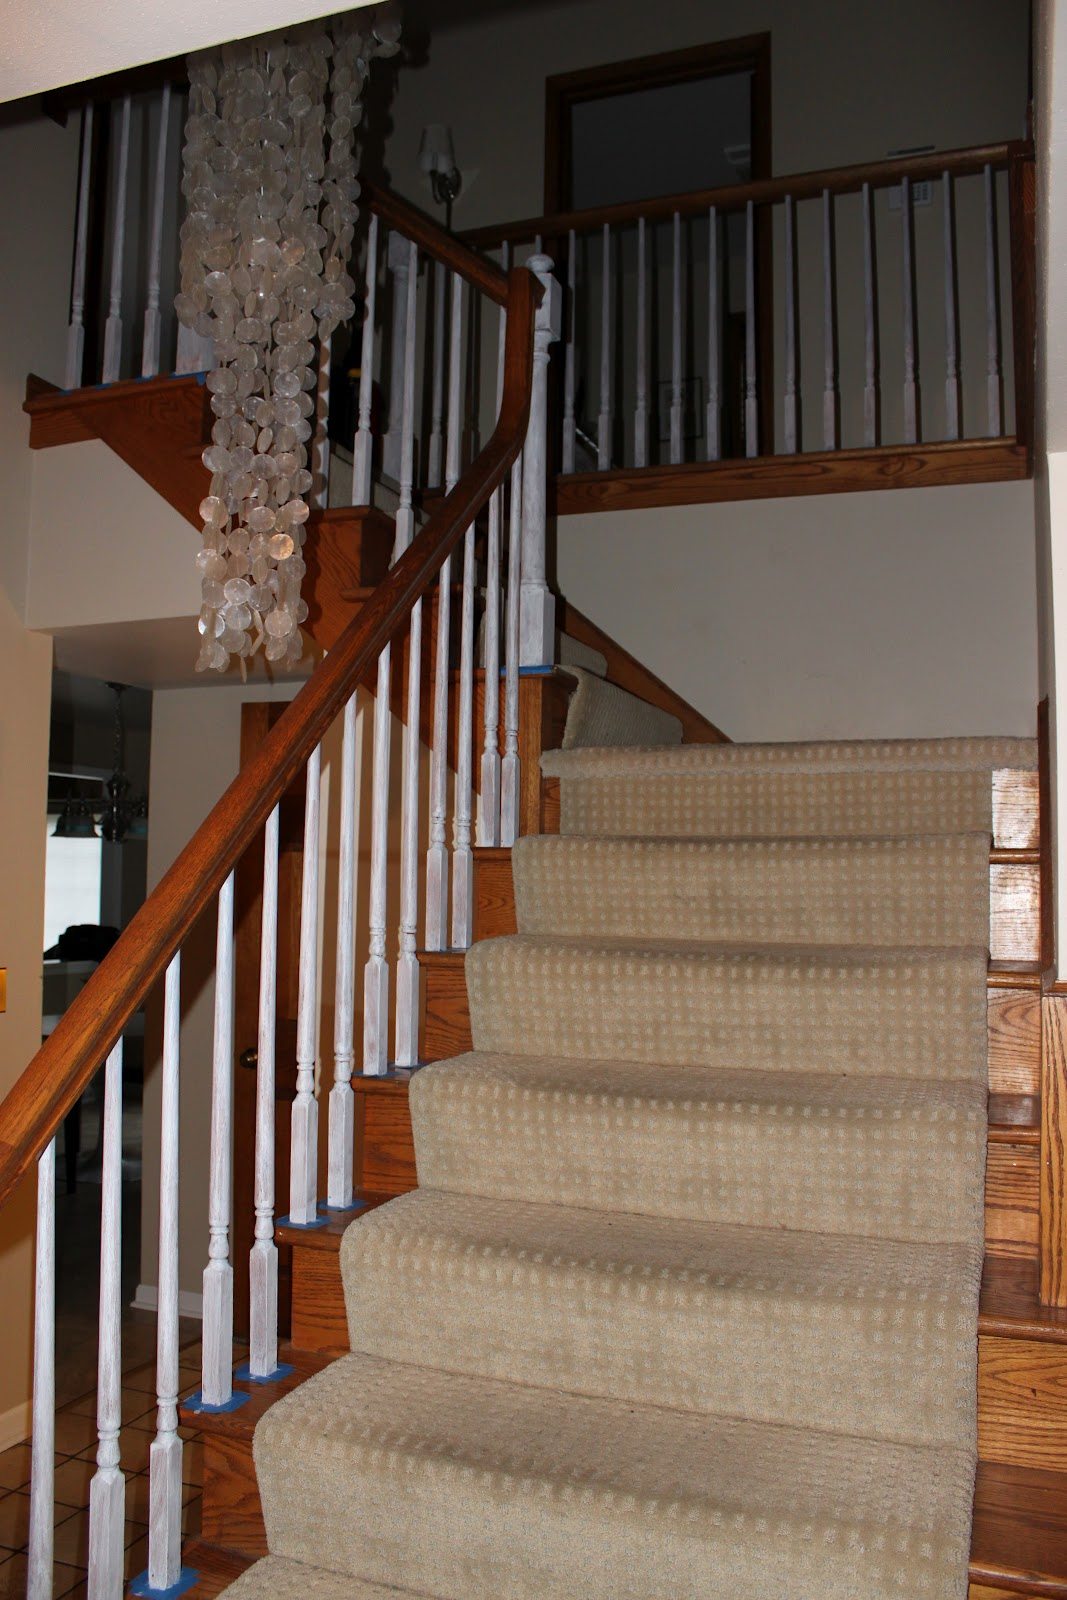 Before And After Bathroom Updates From Rate My Space: My Best Friend Craig: BEFORE AND AFTER: STAIRCASE